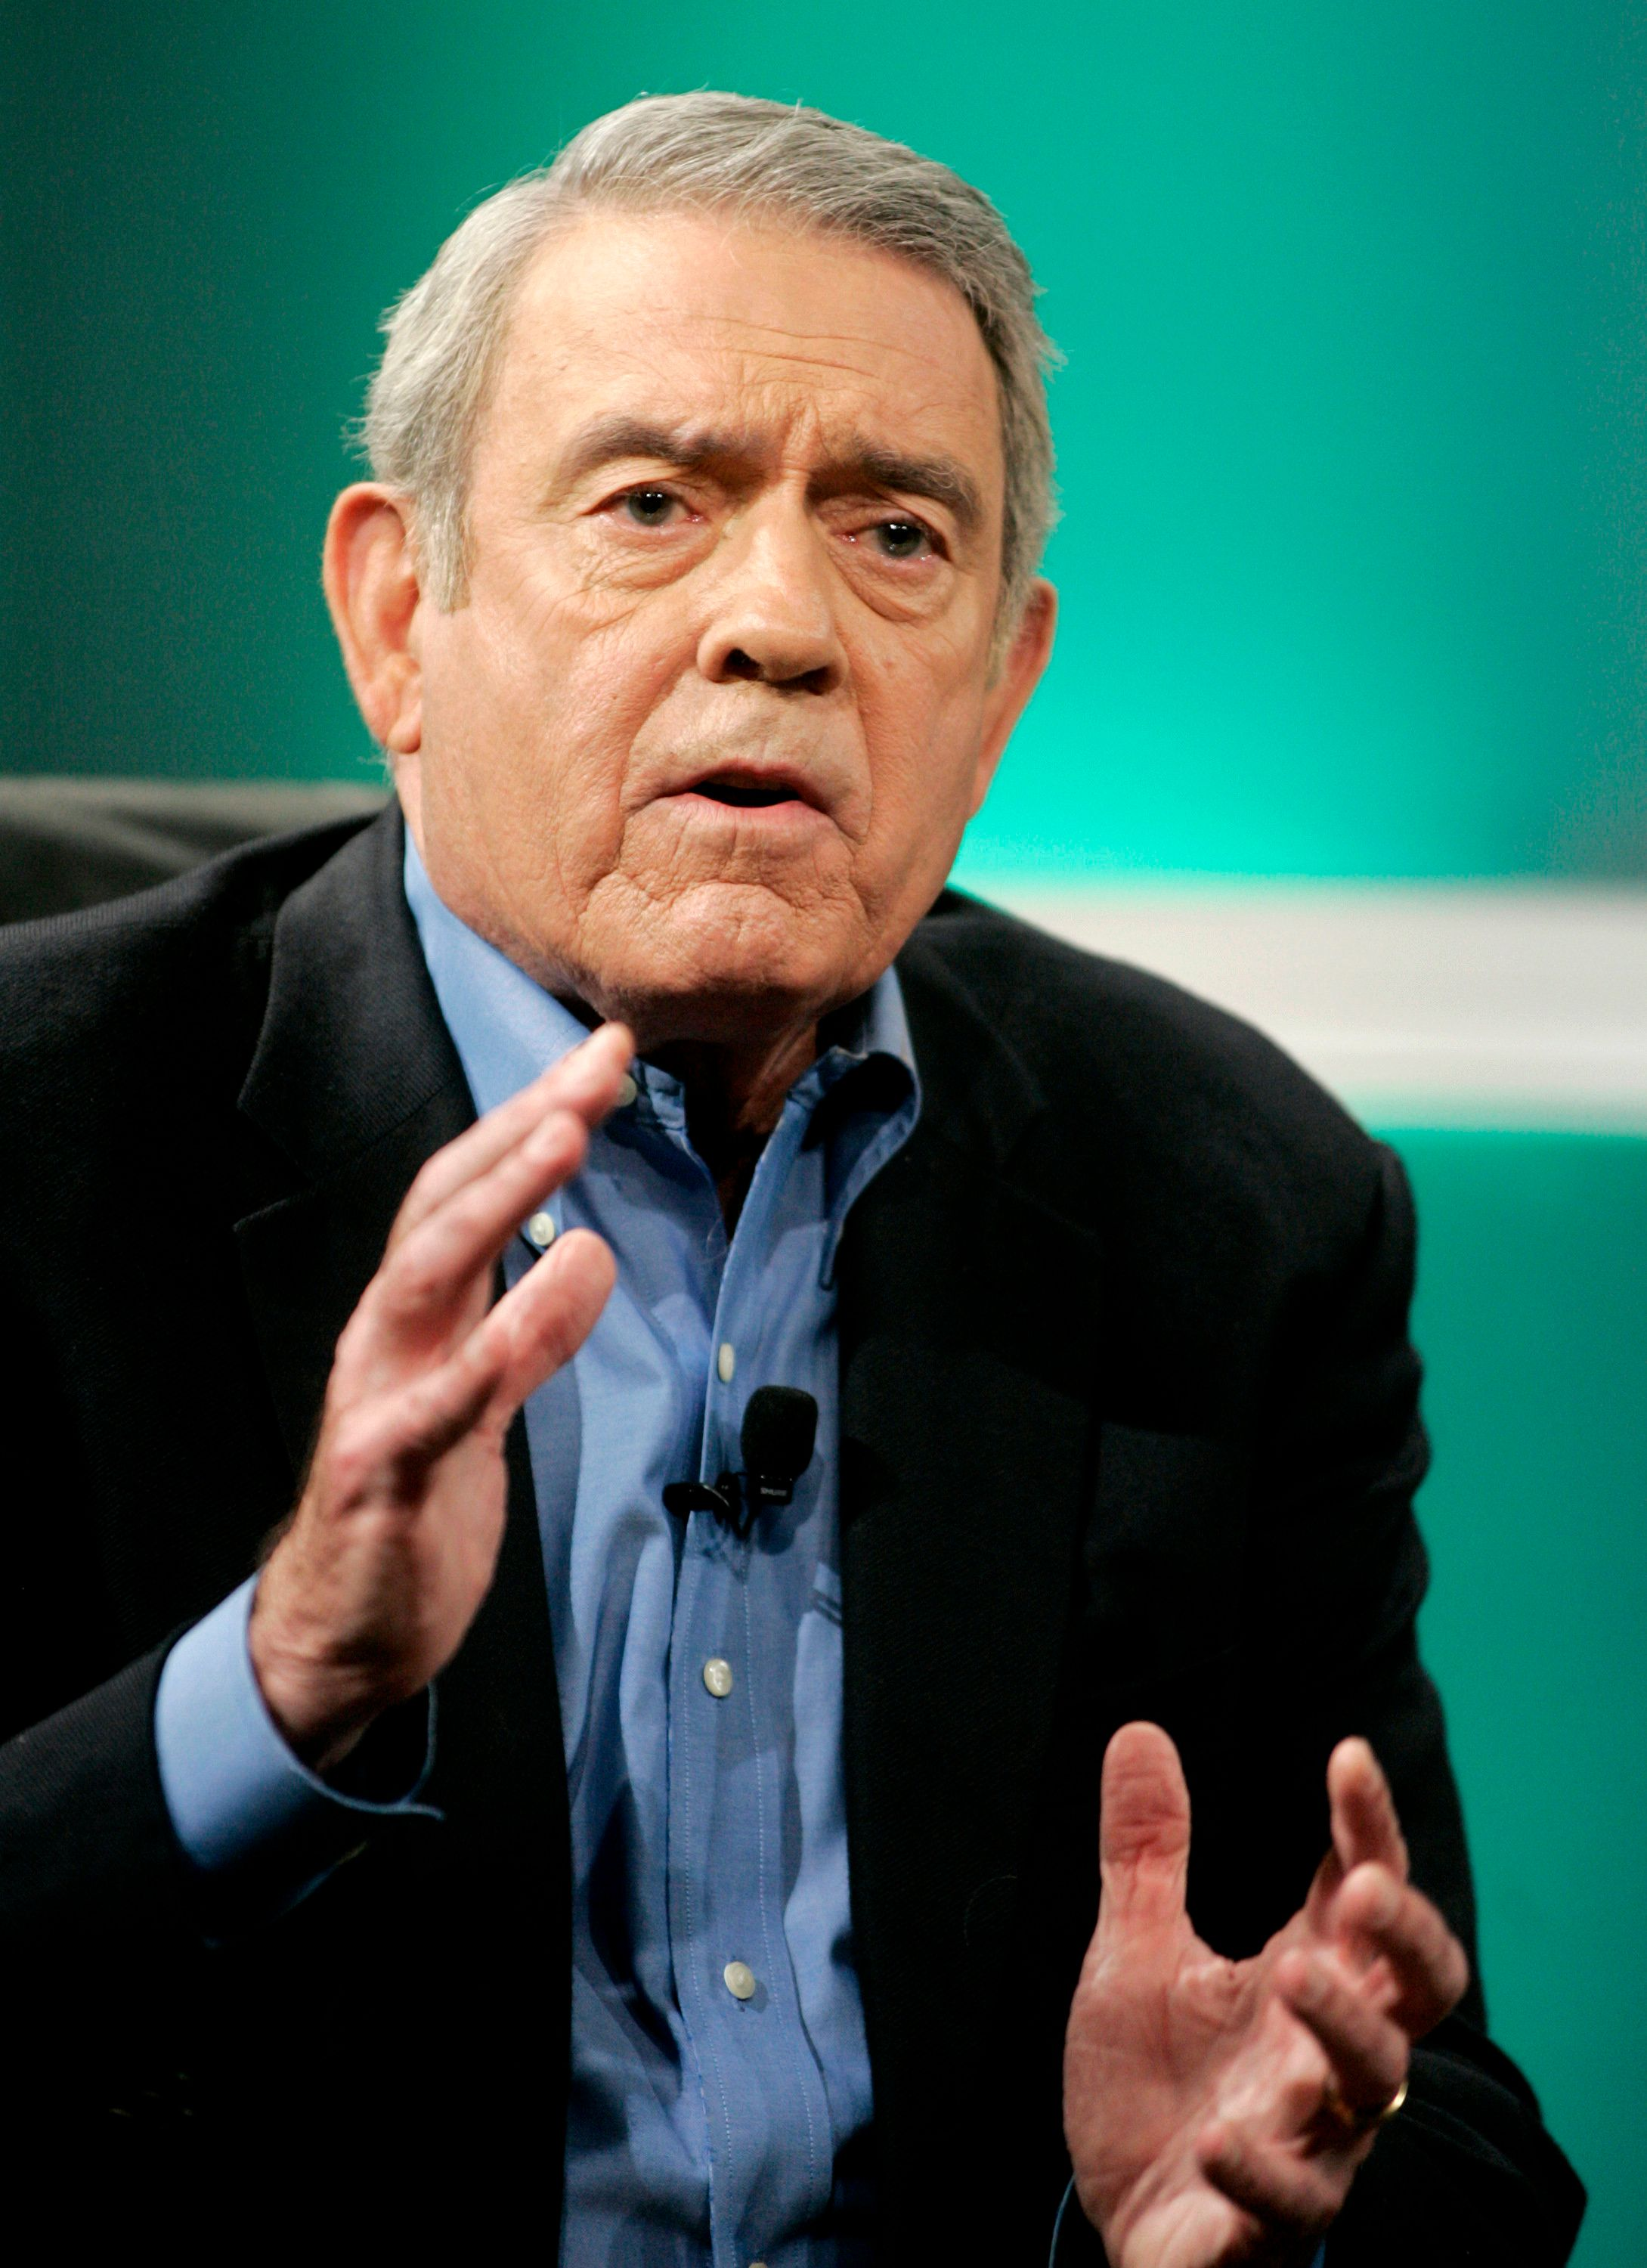 Former CBS news anchor Dan Rather answers questions at the Cable Television Critics Association press tour in Pasadena, California July 11, 2006 about his new program 'Dan Rather Presents' which premieres October 2006 on HDNet, the high-definition channel owned by billionaire entrepreneur Mark Cuban. REUTERS/Fred Prouser (UNITED STATES)